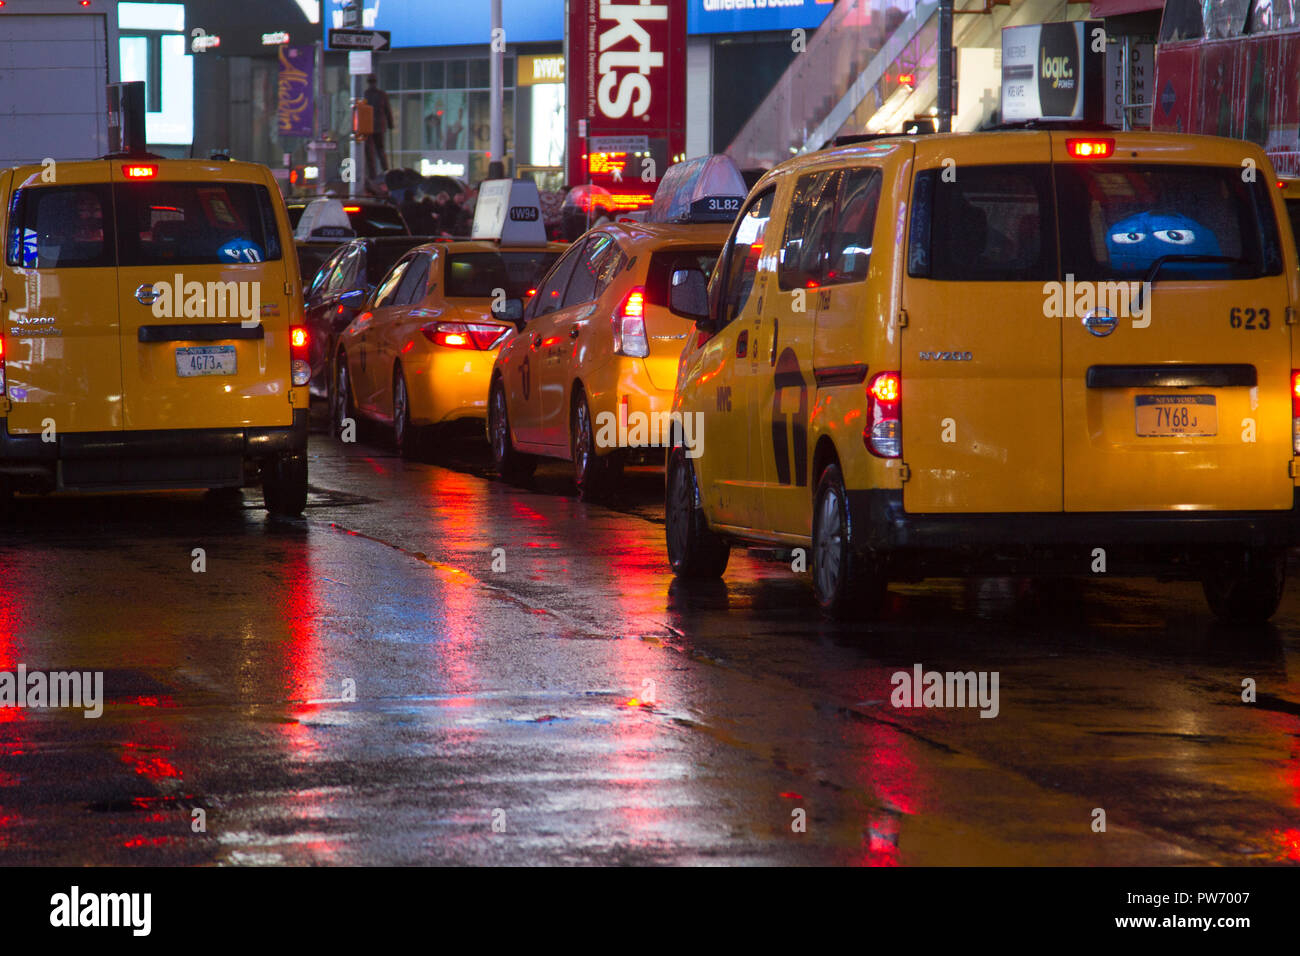 Yellow cabs in the rain, Time Square, New York, USA Stock Photo